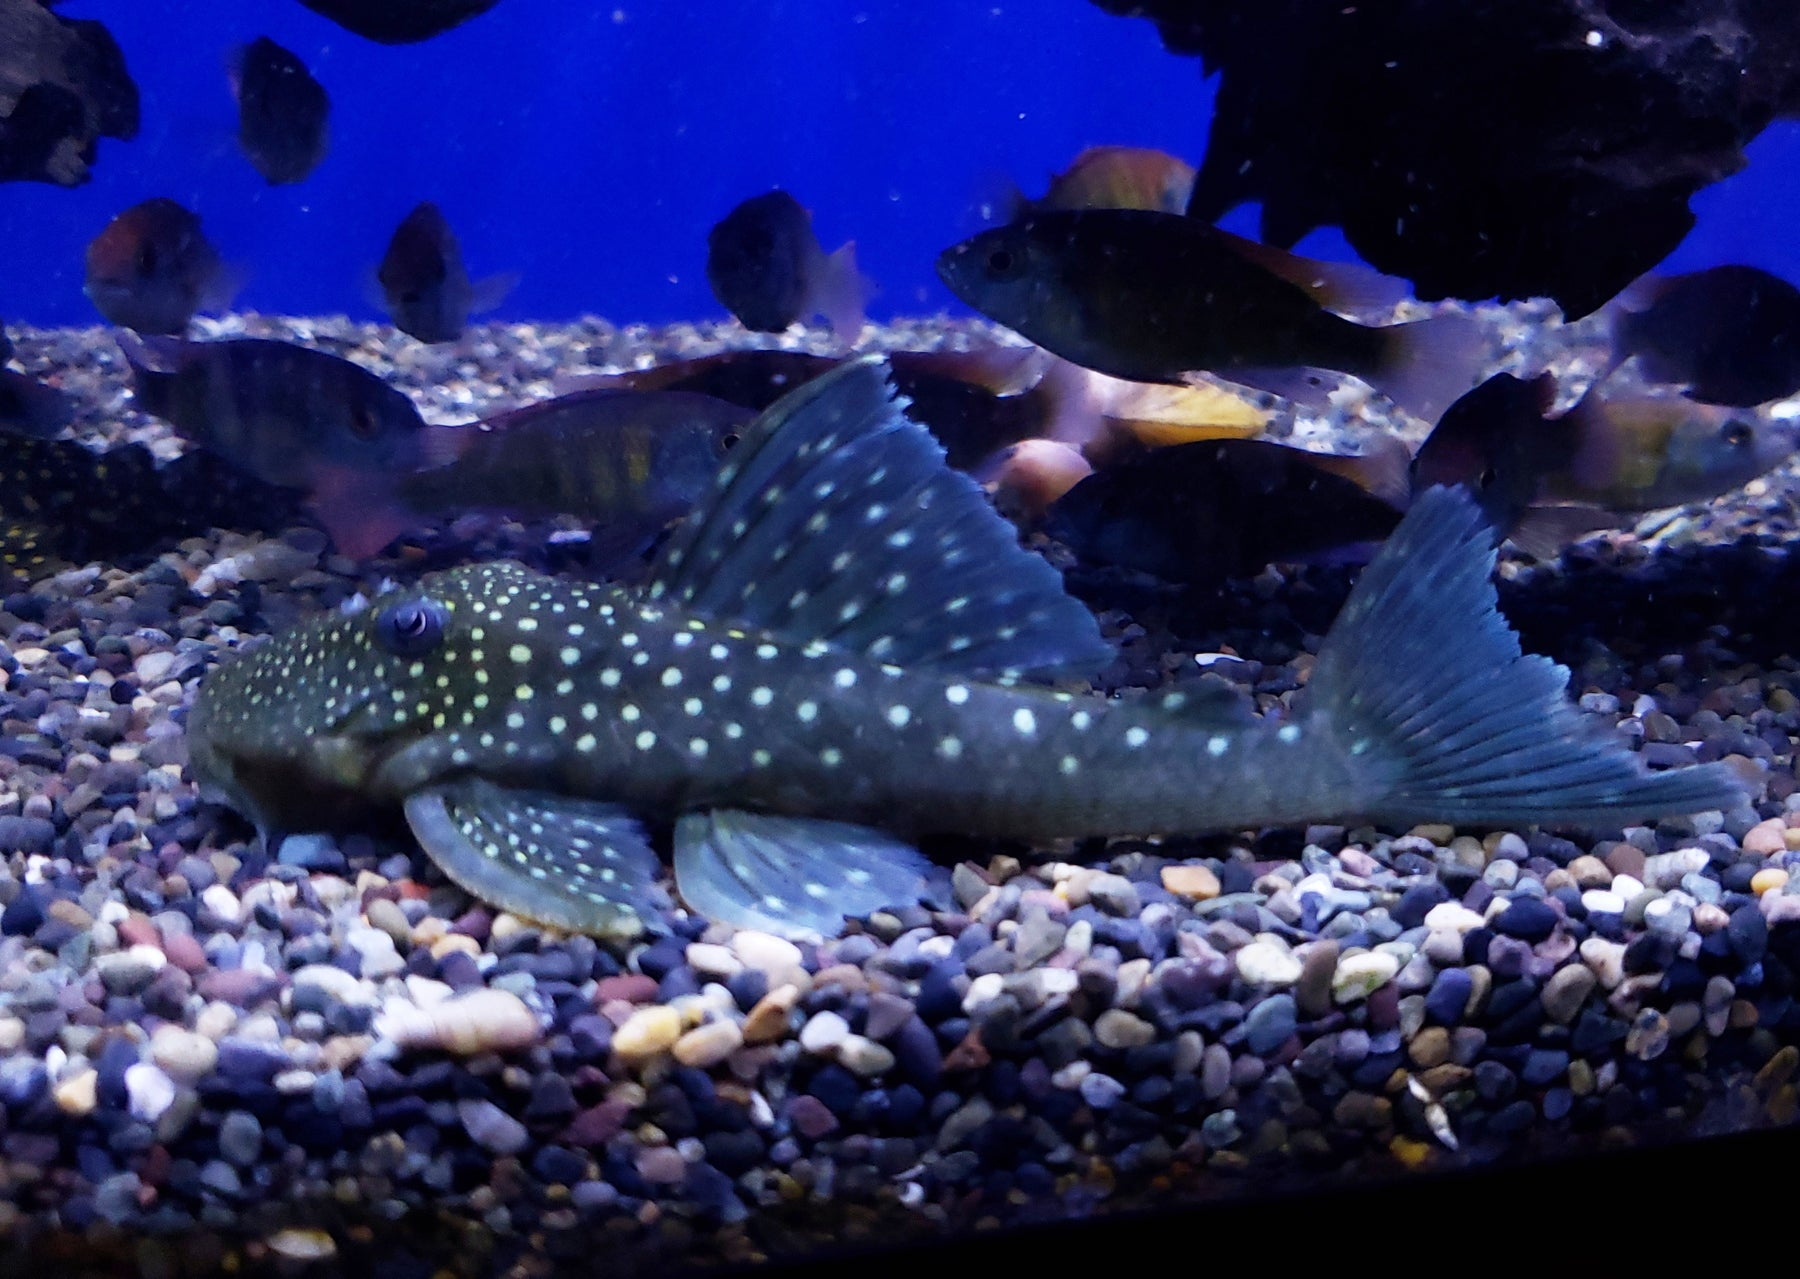 Blue Phantom Pleco L128 (Hemiancistrus sp.)